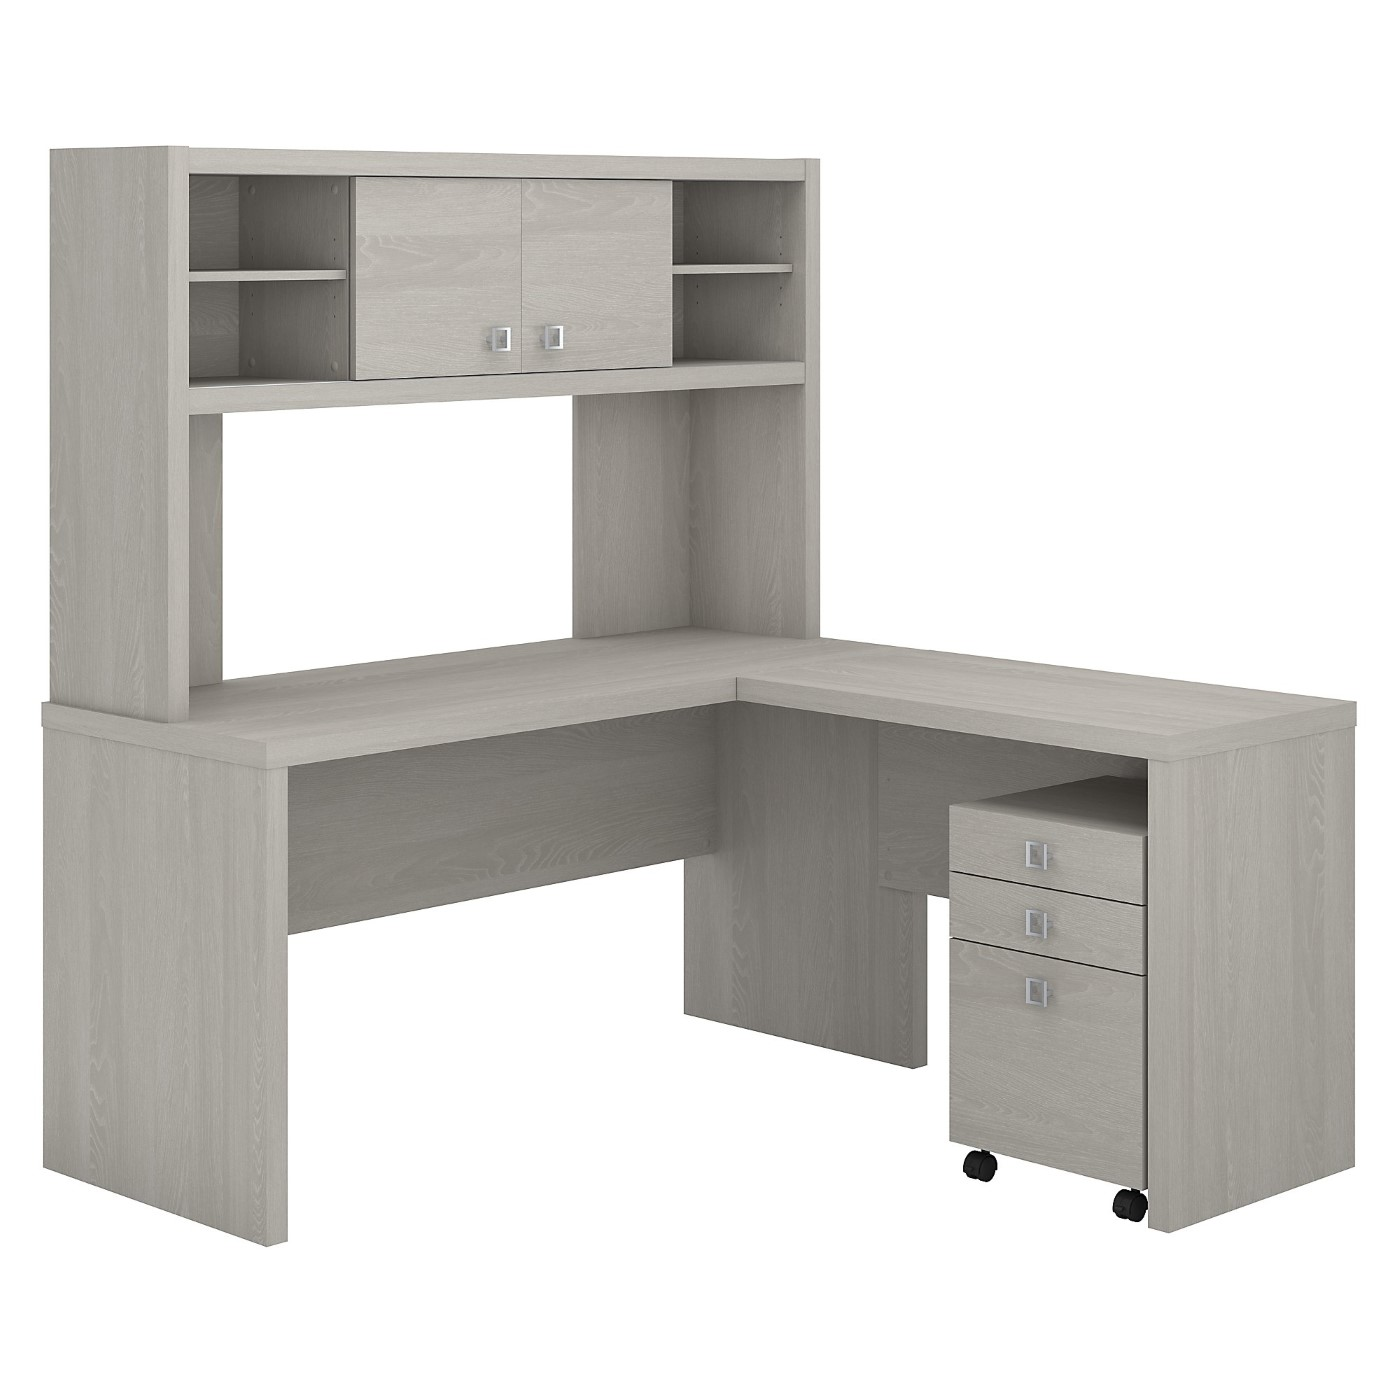 The kathy ireland� Echo L Shaped Desk with Hutch and Mobile File Cabinet is Sustainable Eco Friendly Furniture. Includes Free Shipping! 30H x 72L x 72W.